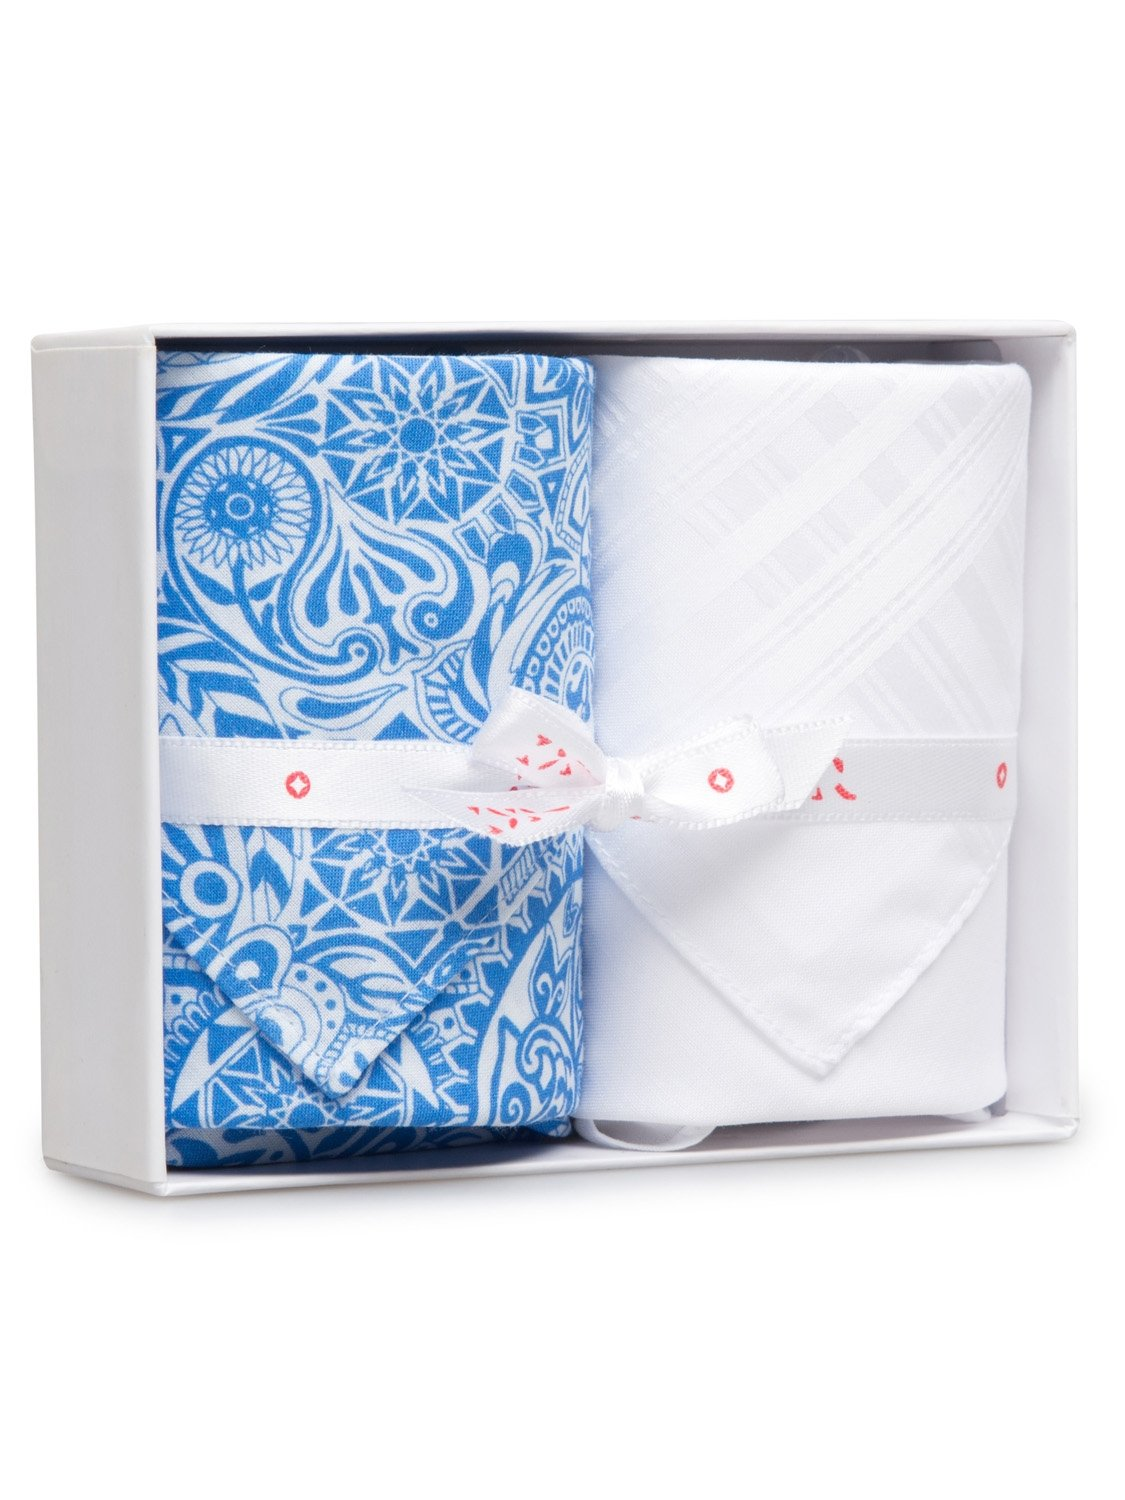 Handkerchief Set Pack 130 Ledbury 6 Blue & Plain White